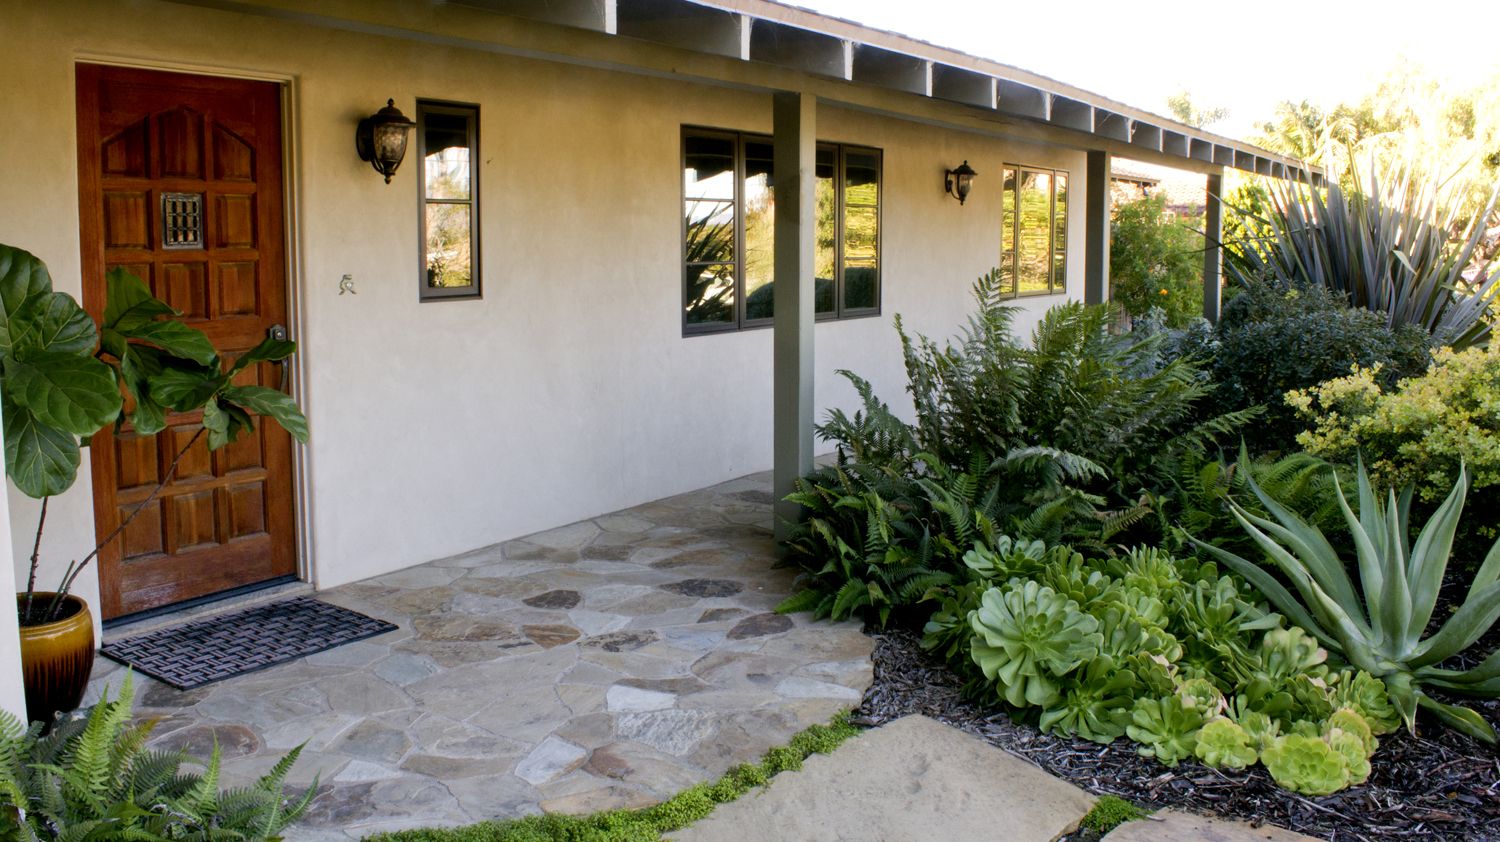 North facing entry landscape takes advantage of shade created by housing structure to create a lush mix of ferns.